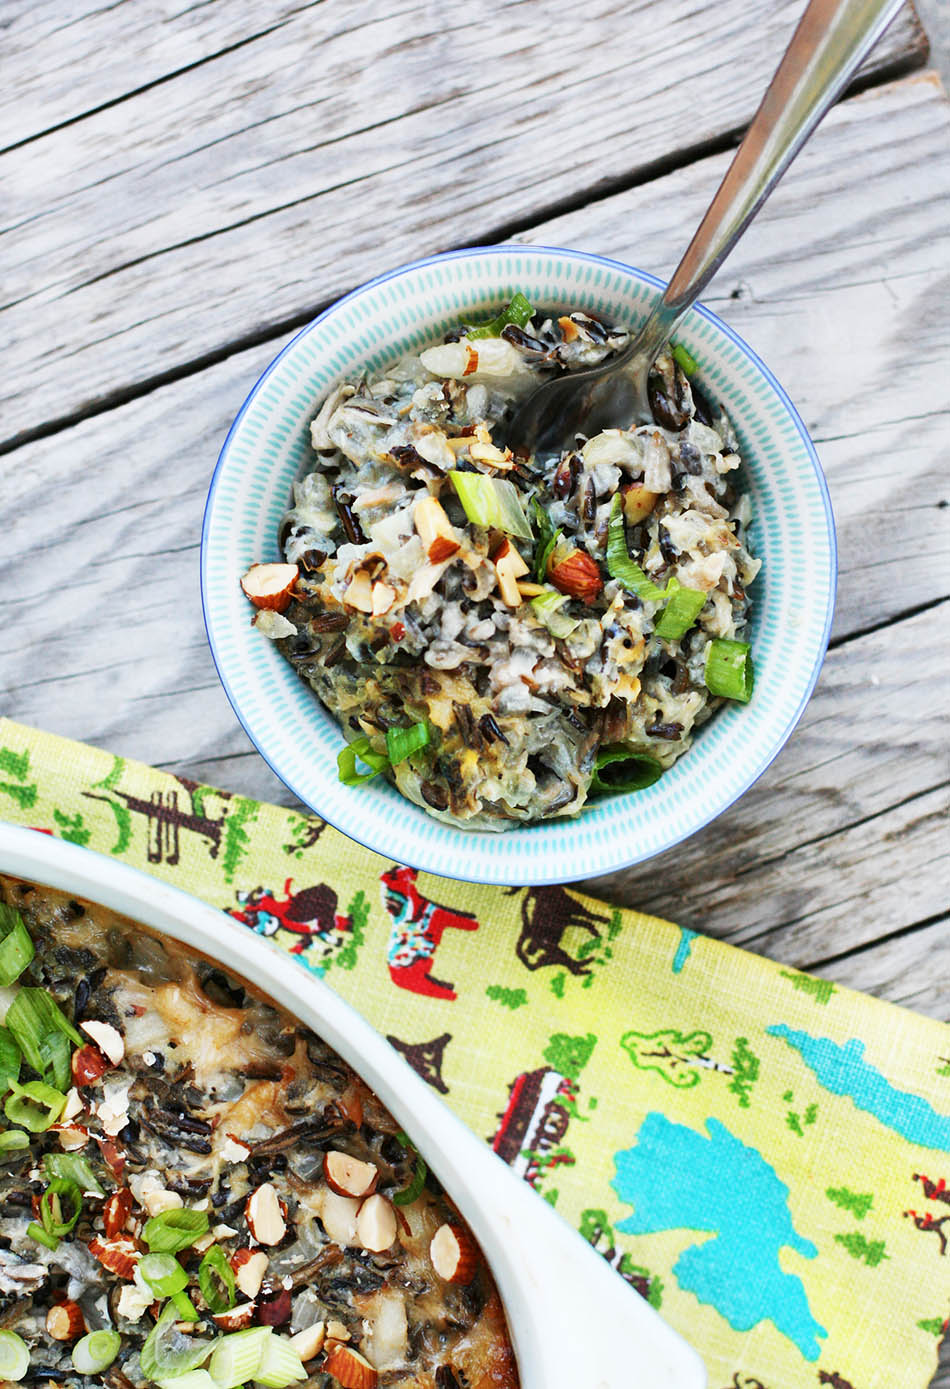 Wild rice hotdish, with chicken, water chestnuts, and other delicious ingredients. Click through for recipe.